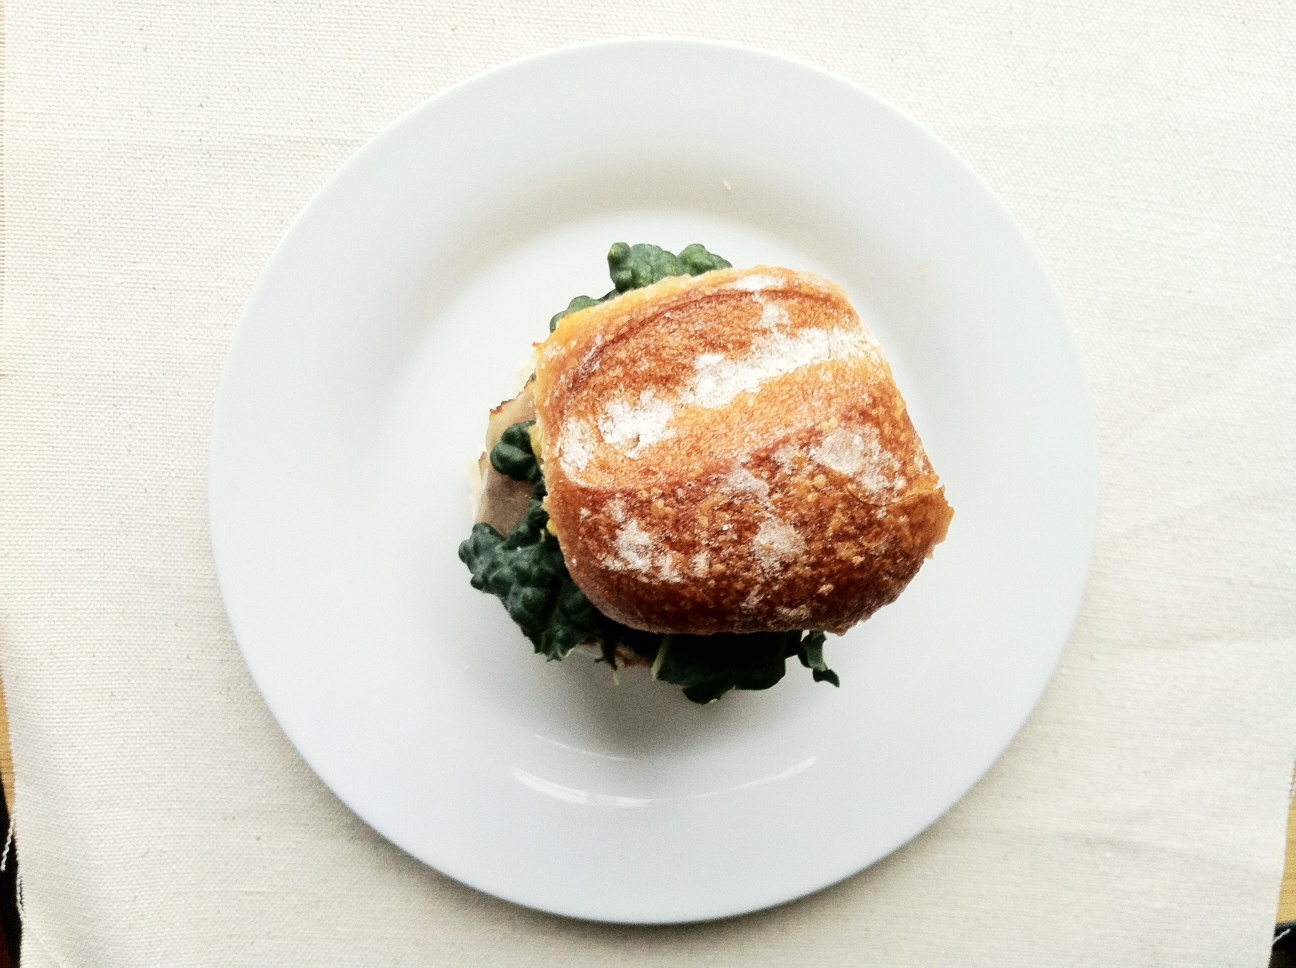 Kale and Salmon Burgers